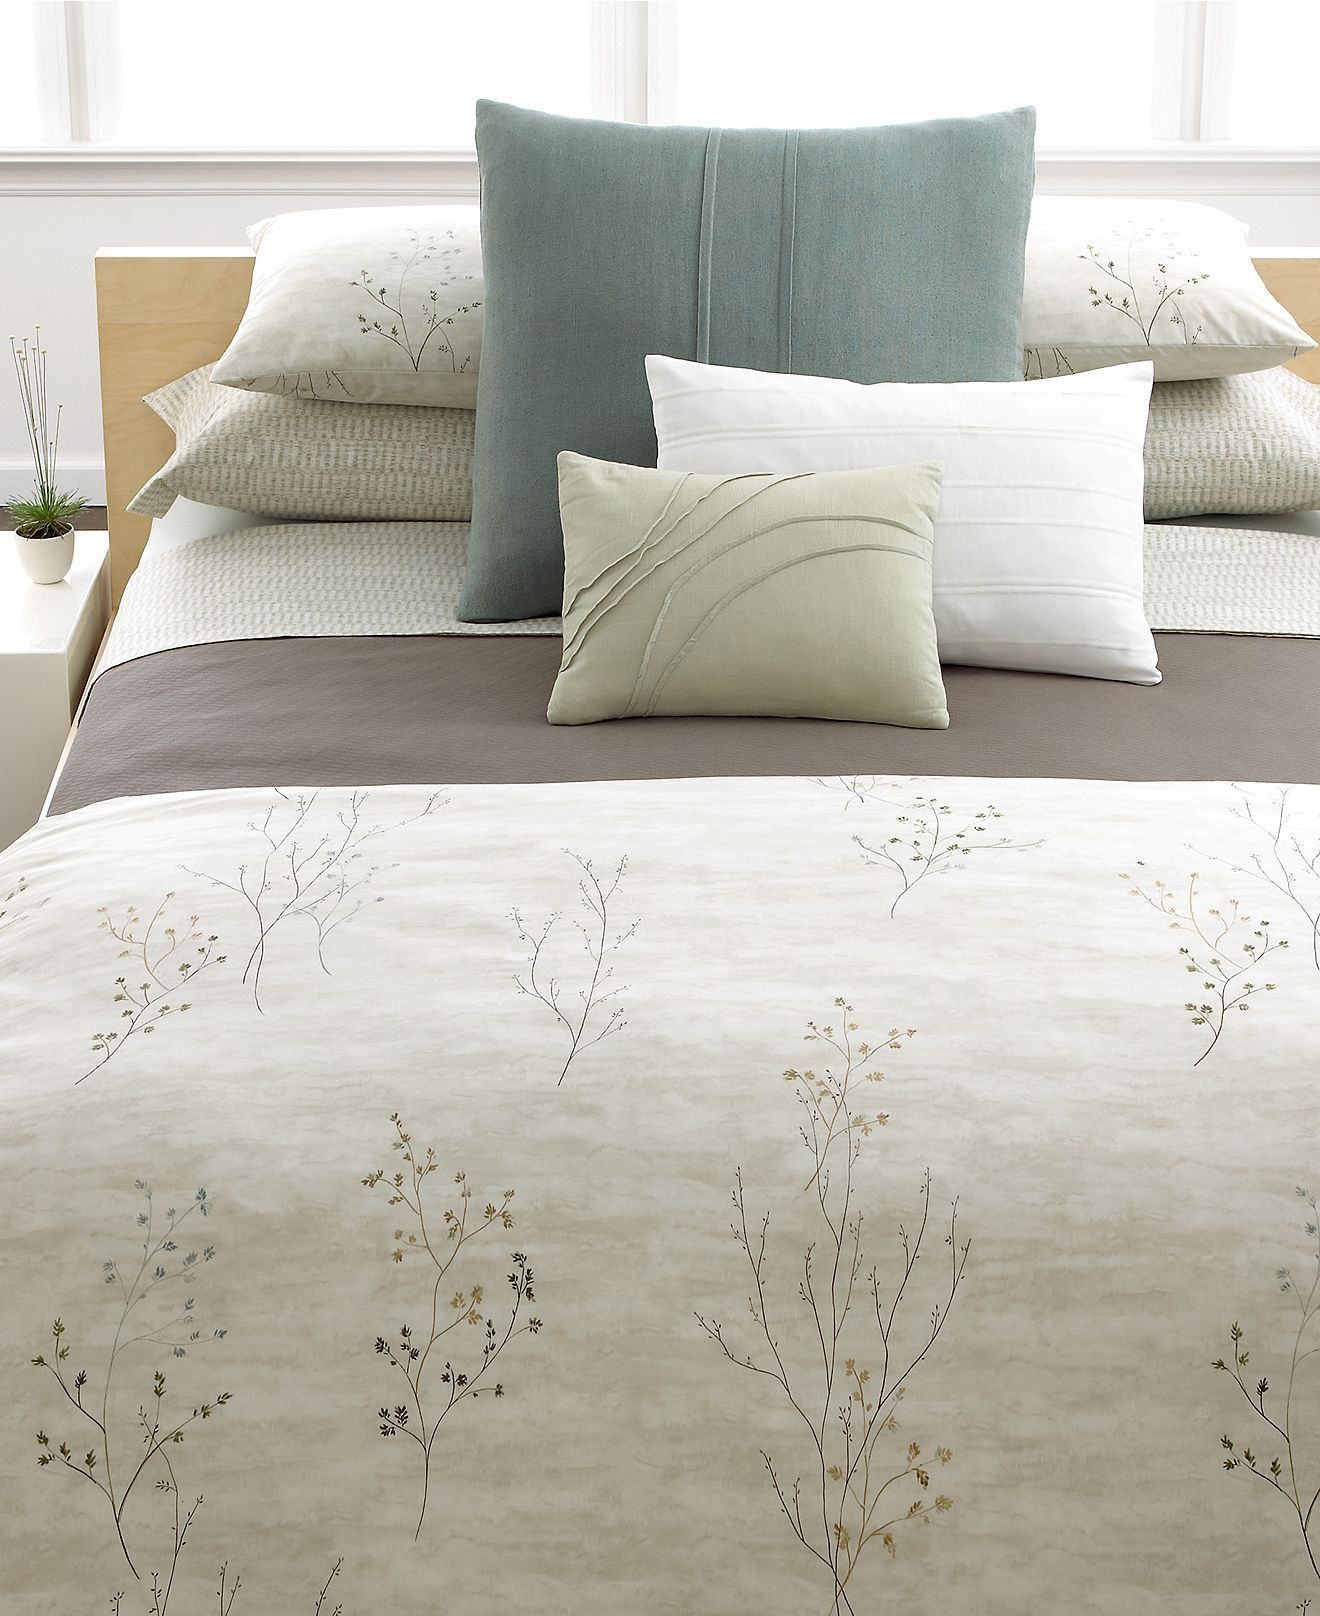 Calvin Klein Home Bedding Briar King Coverlet Quilts Bedspreads Bed Bath Macy S Bed Bedding Collections Queen Comforter